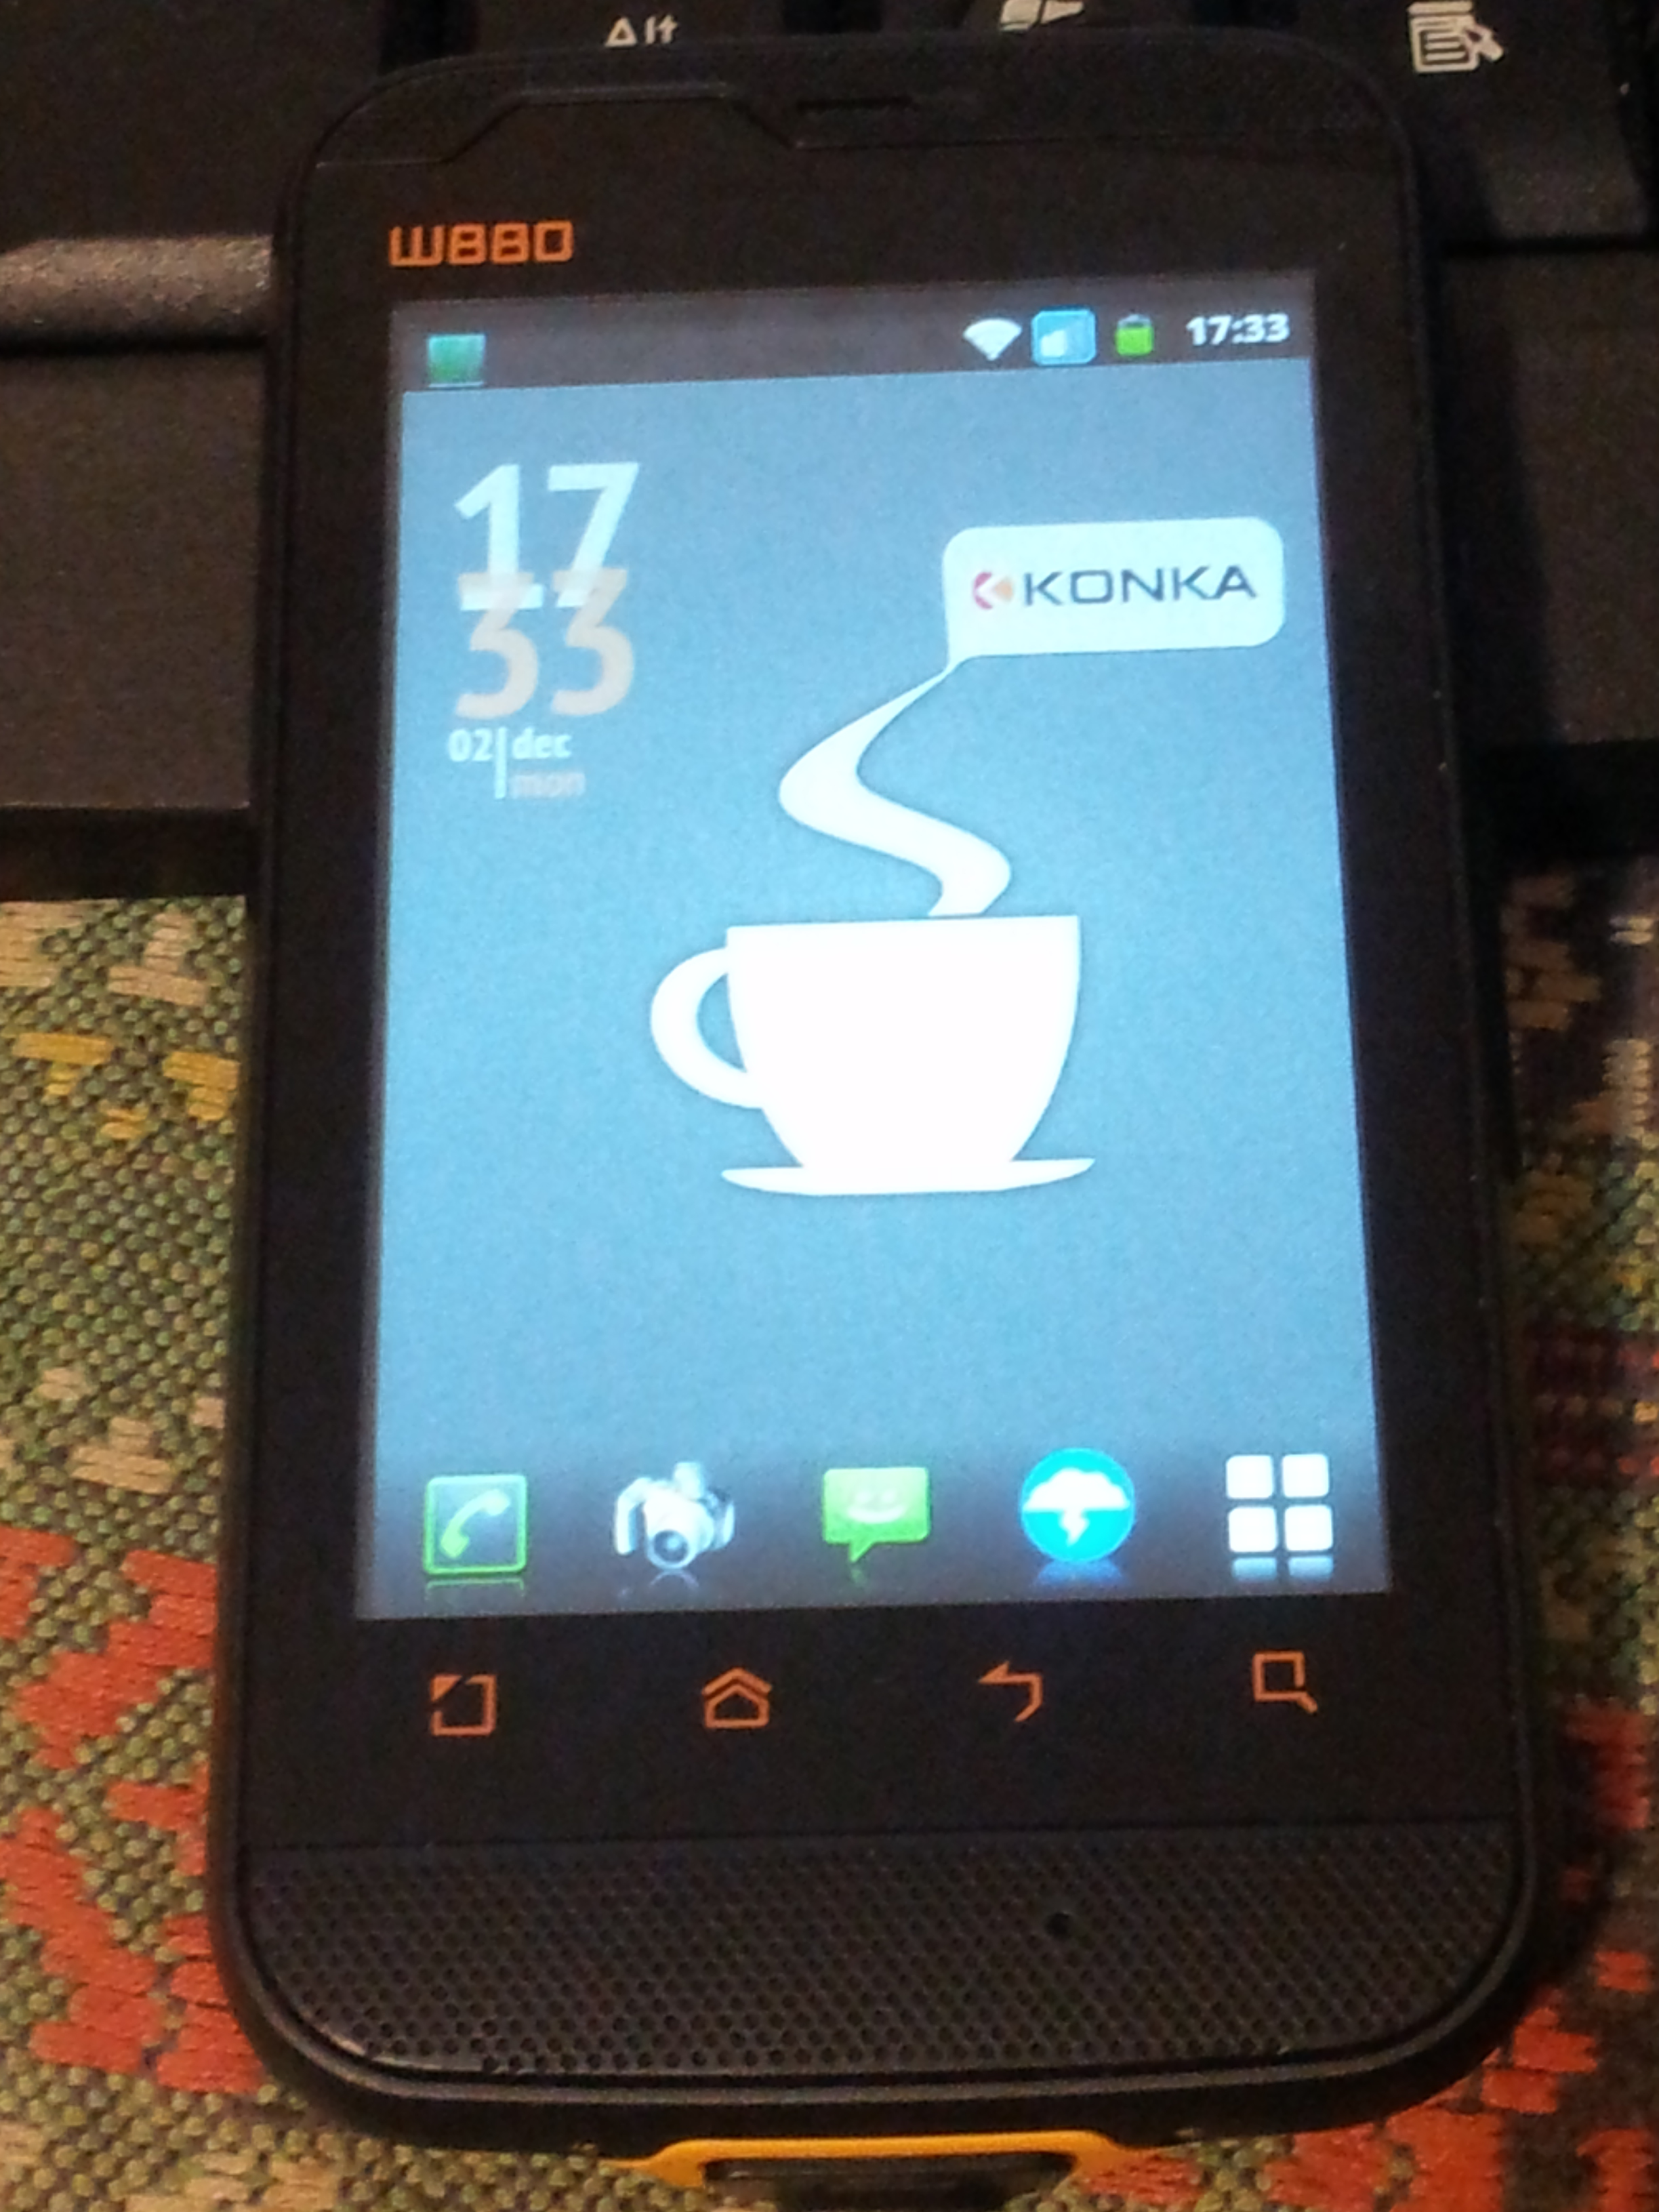 Update: Konka W880 Simply Perfect…